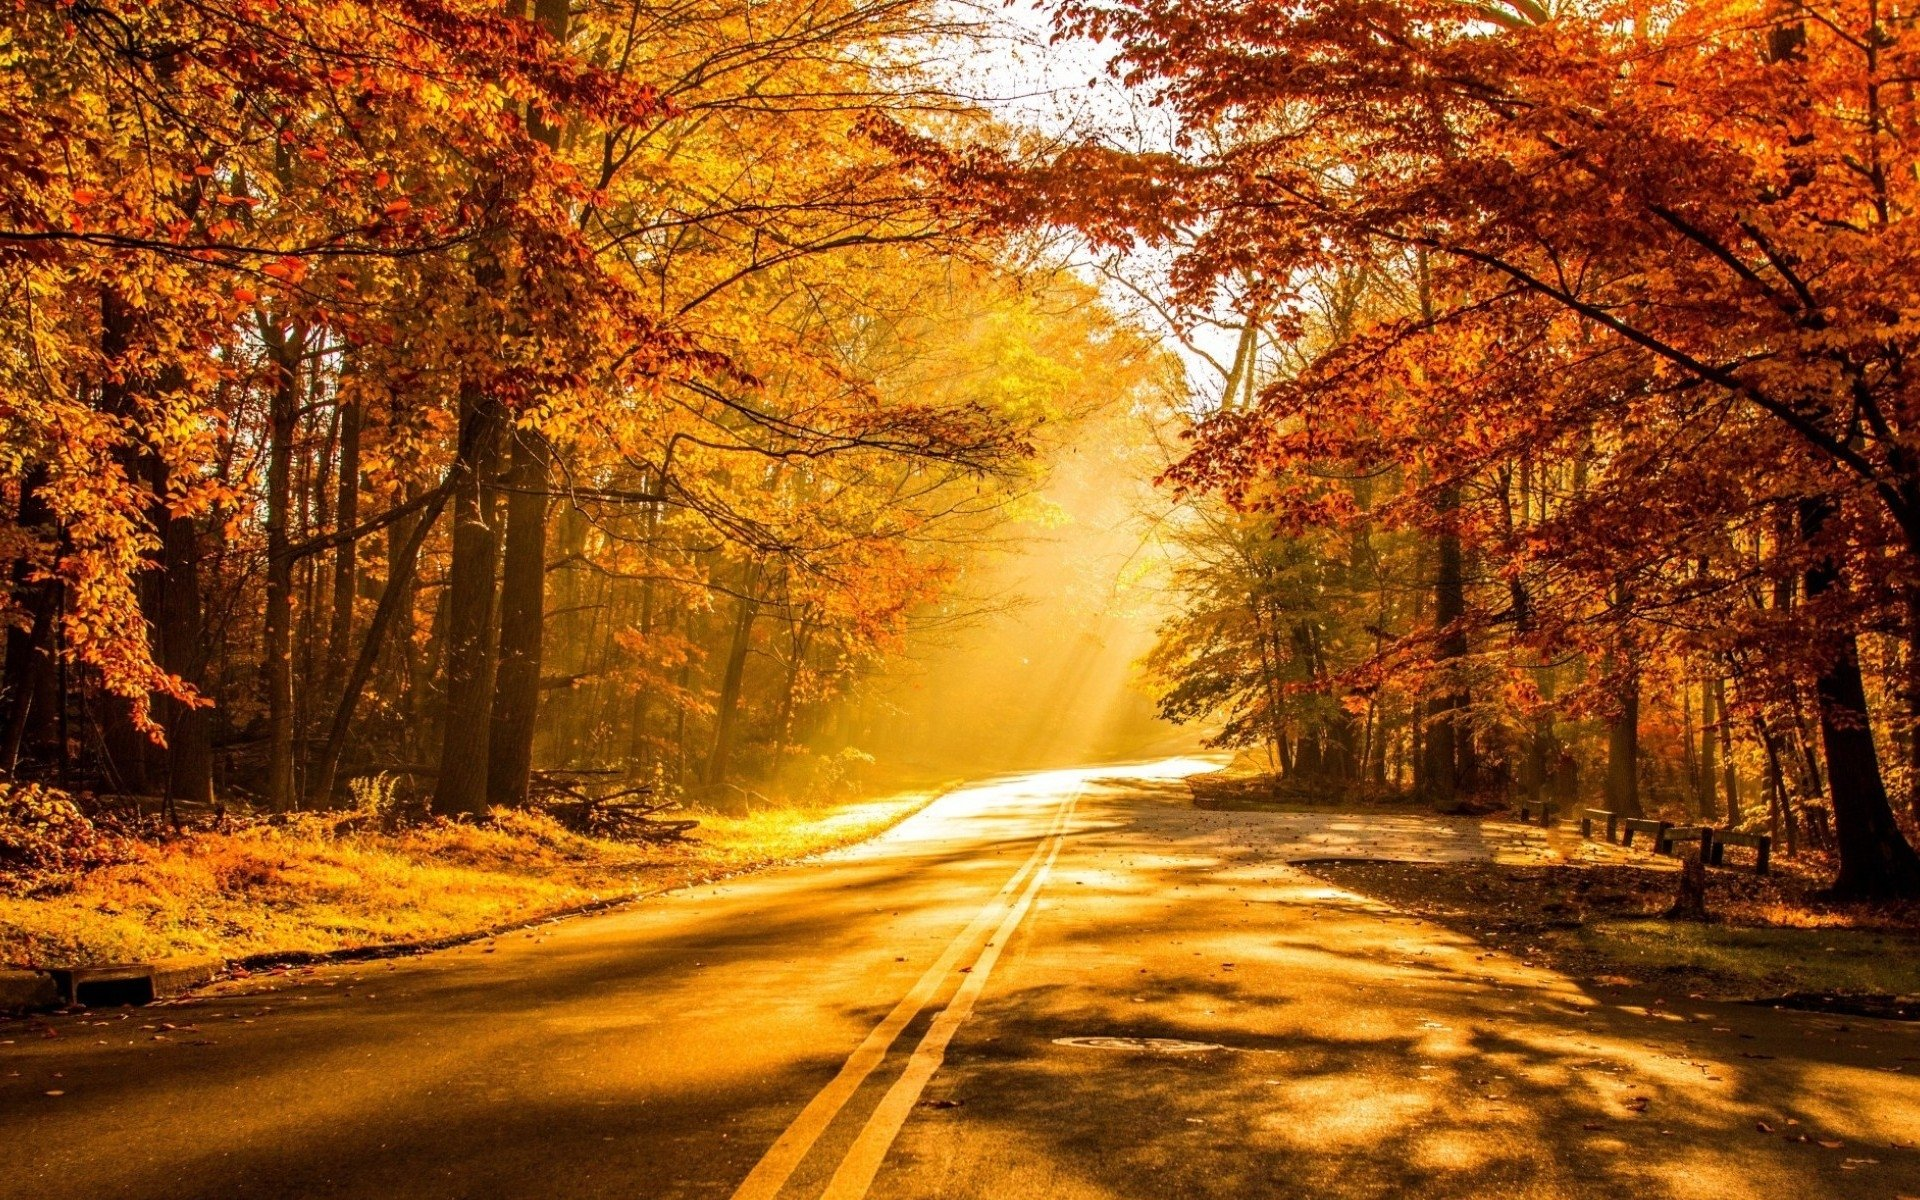 Fall Iphone Wallpaper Pinterest Fall Full Hd Wallpaper And Background Image 1920x1200